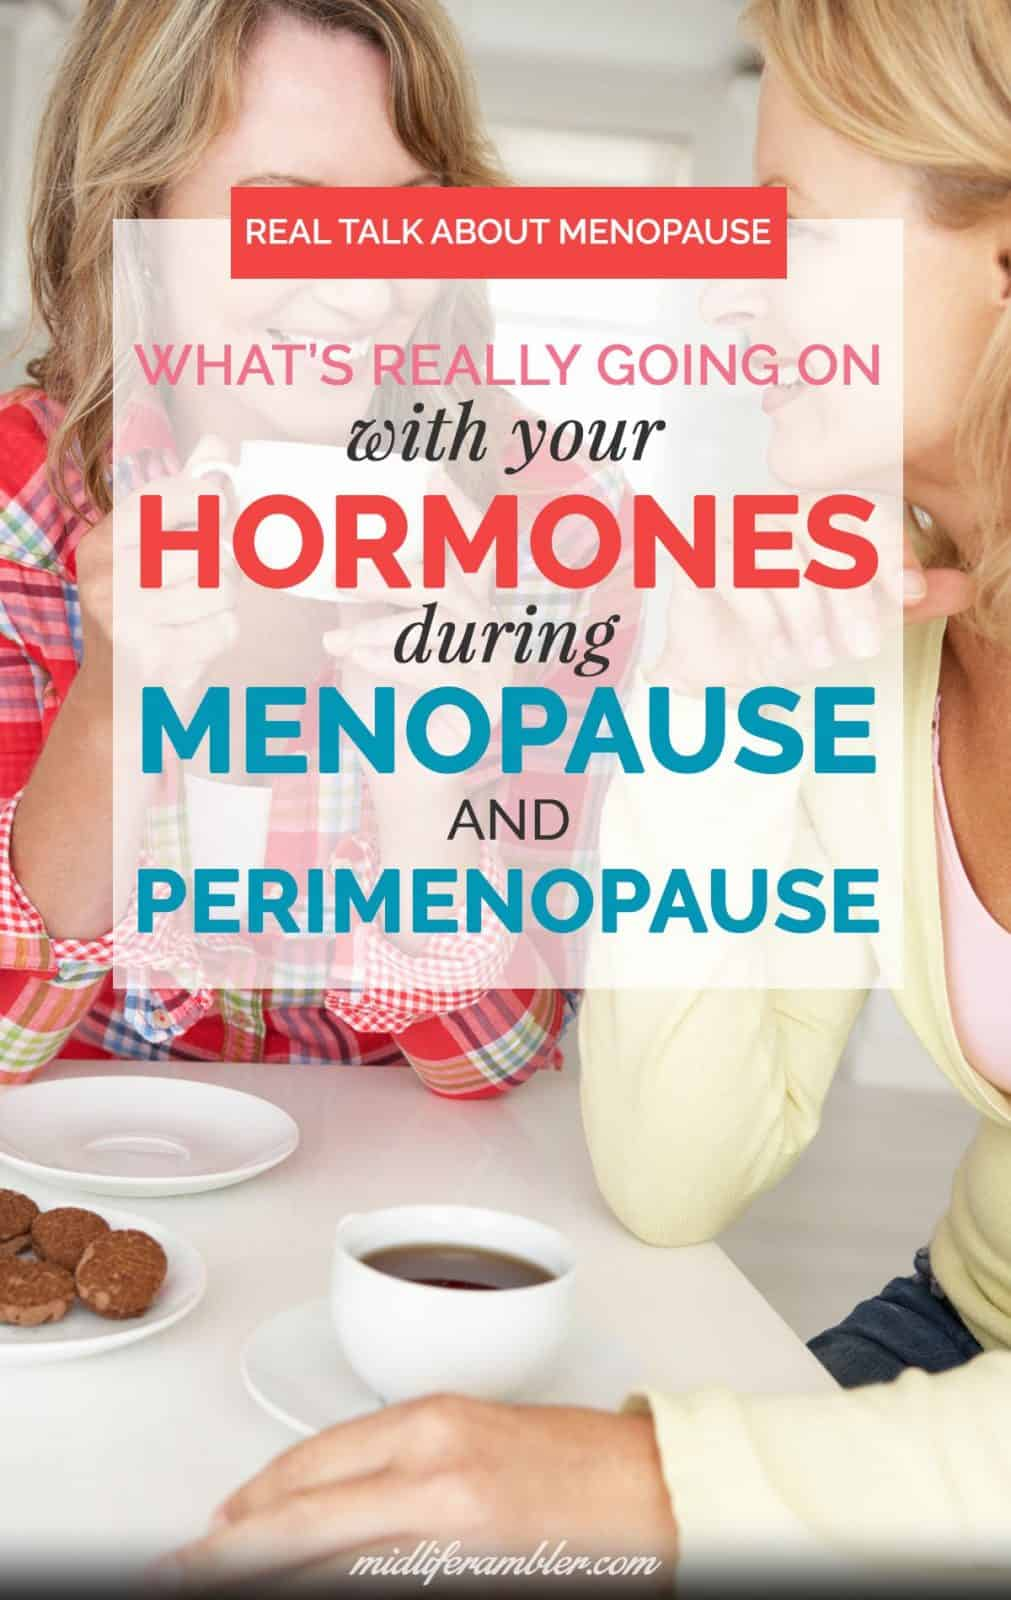 What Happens During Menopause and Perimenopause with Your Hormones 4